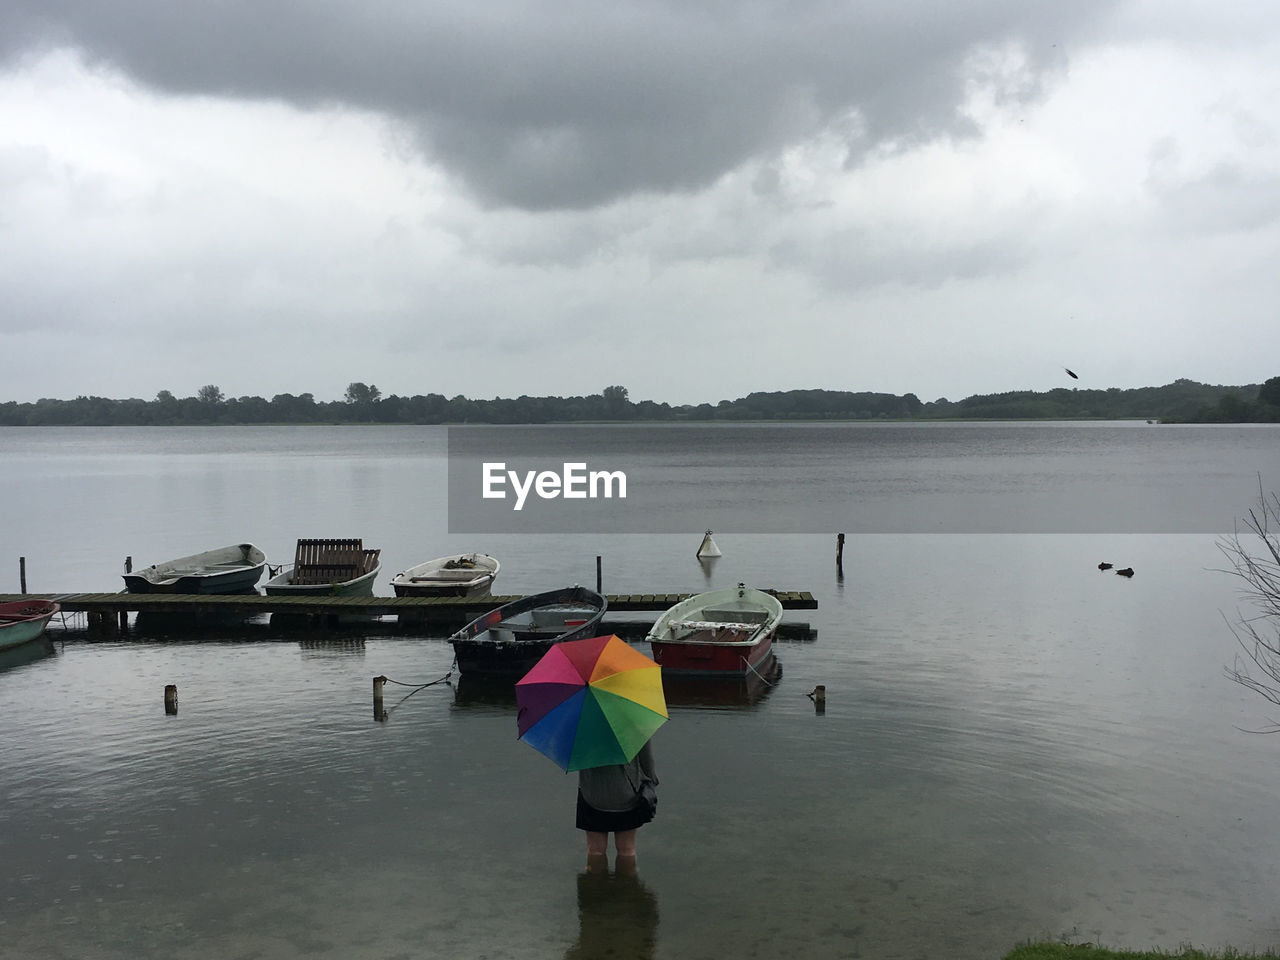 water, sky, cloud - sky, transportation, nautical vessel, mode of transportation, day, nature, lake, beauty in nature, reflection, scenics - nature, outdoors, overcast, protection, waterfront, tranquility, tranquil scene, rain